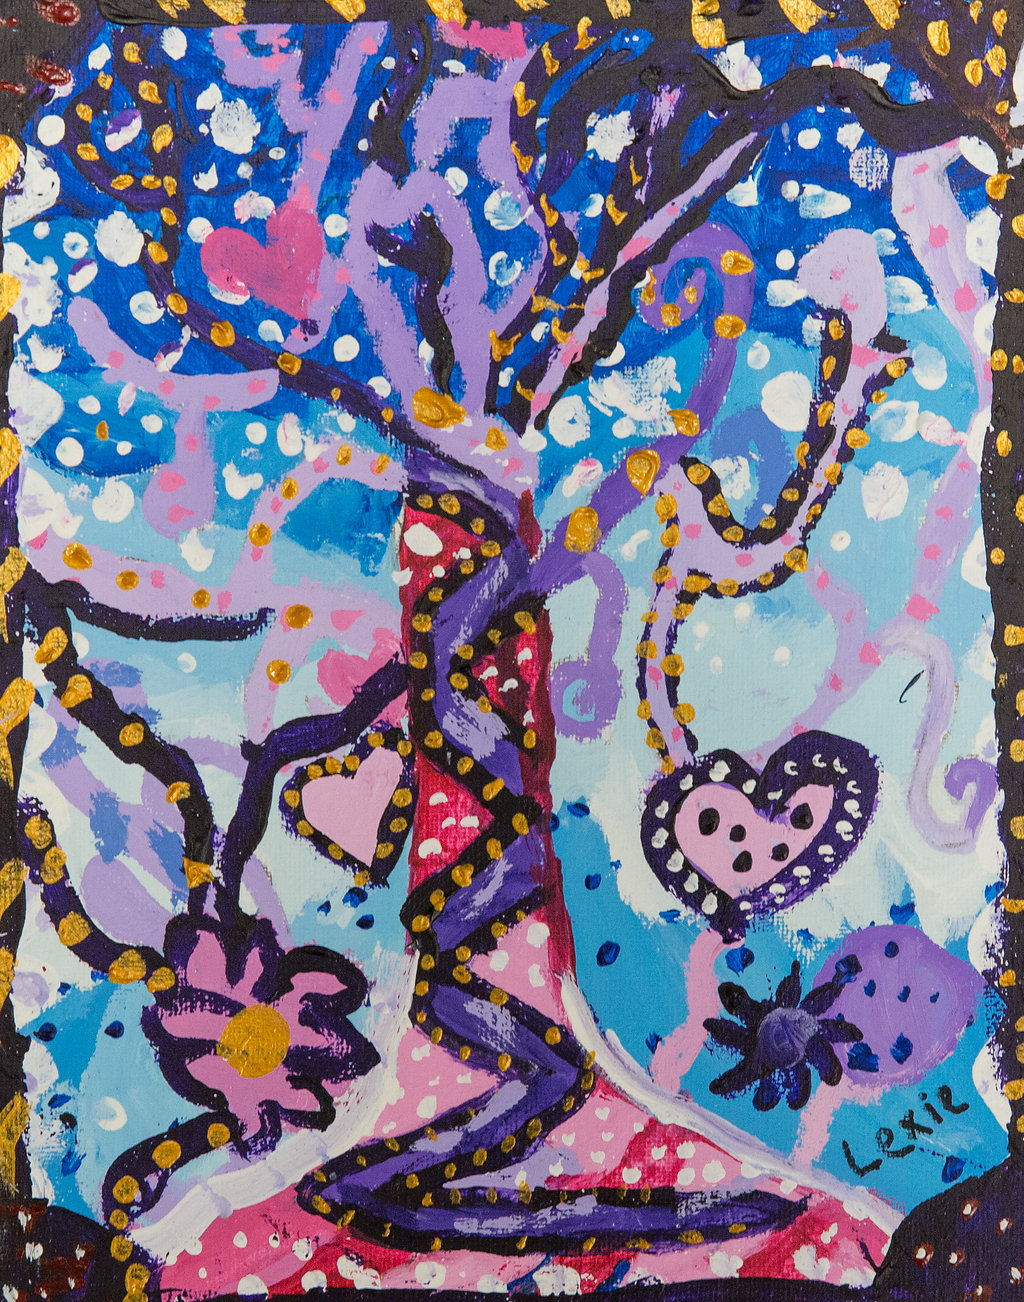 Tree of Life Painting - Year 6 Malorees Junior School Brent